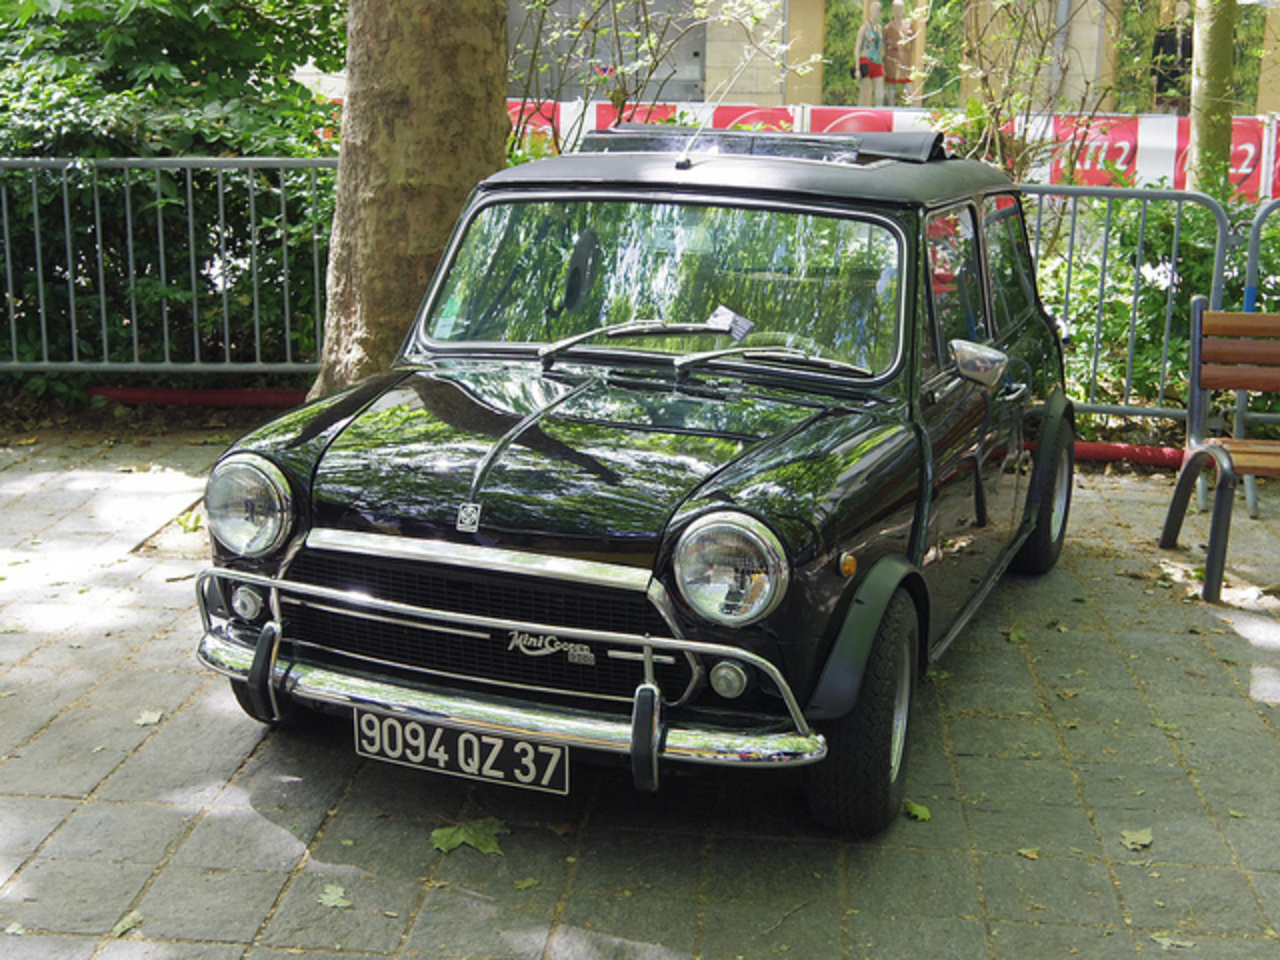 Austin Mini Cooper 1300 de 1979 9094 QZ 37 - 16 juin 2013 (Grand ...